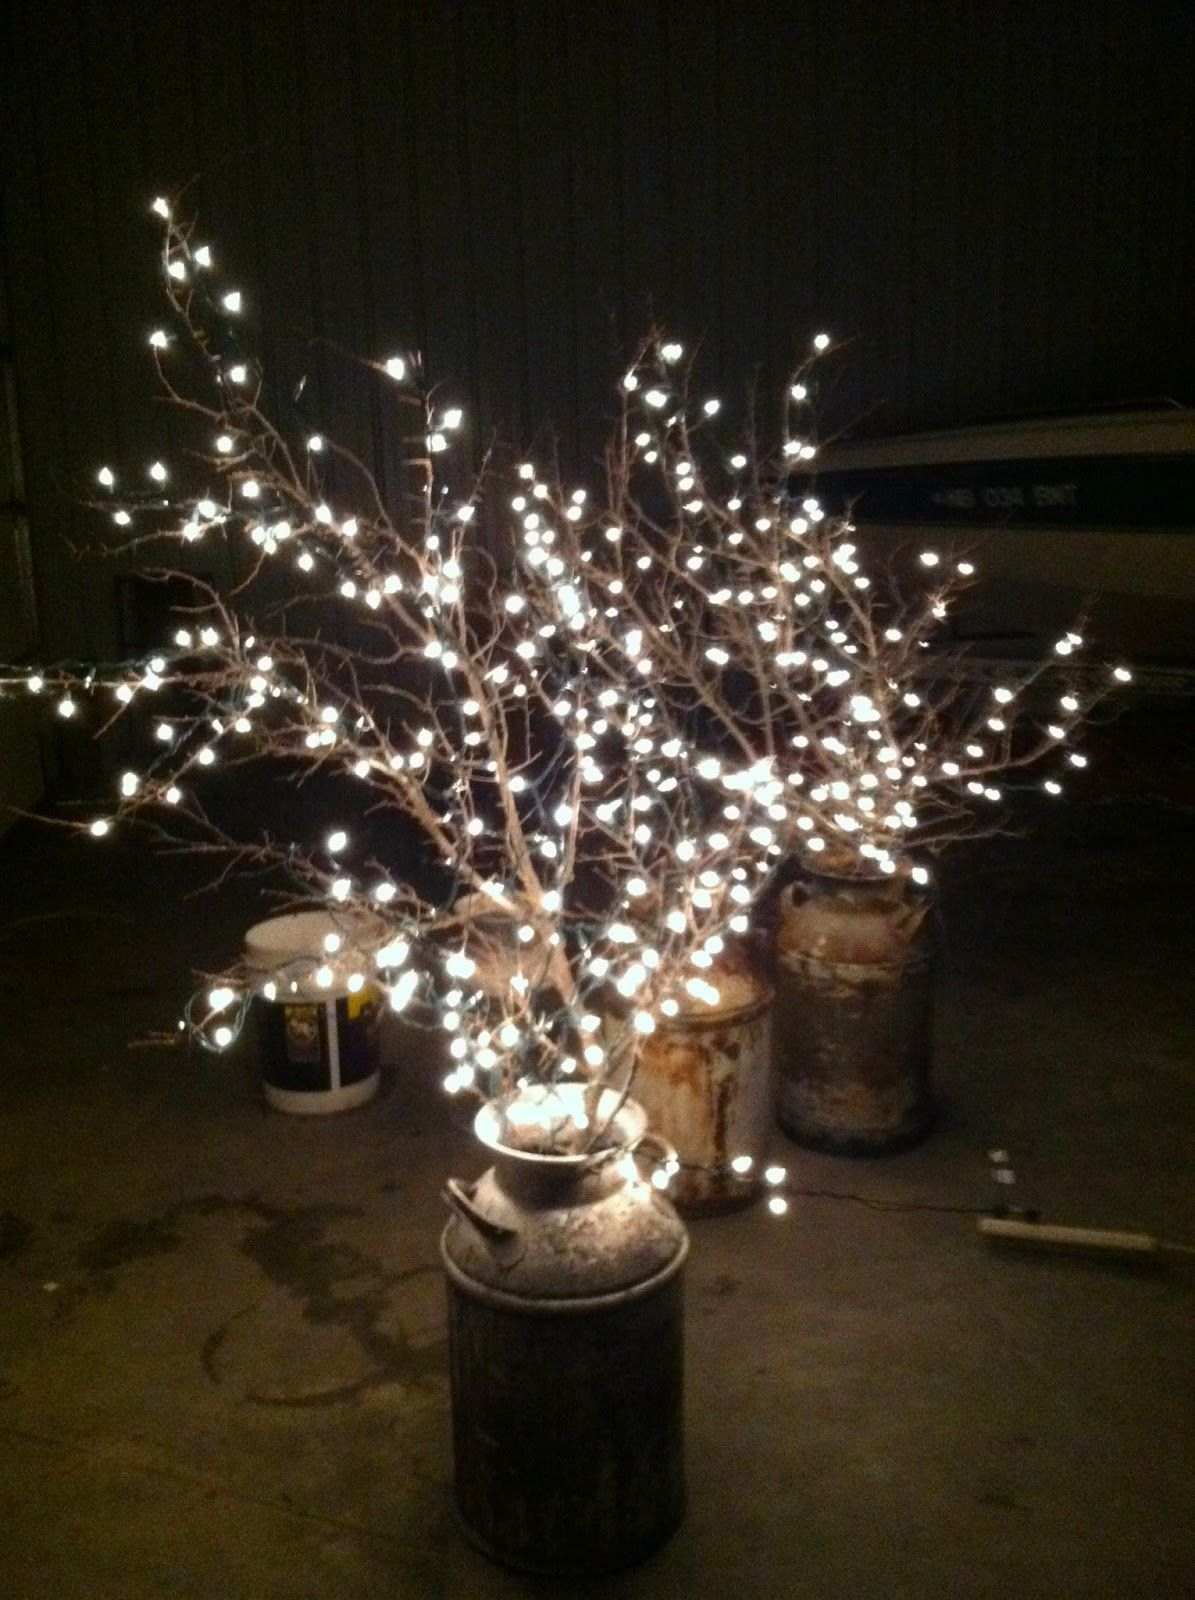 diy lighting for wedding. Cheap Wedding Lighting. Use Old Milk Cans, Branches, And White Lights! Diy Lighting For I